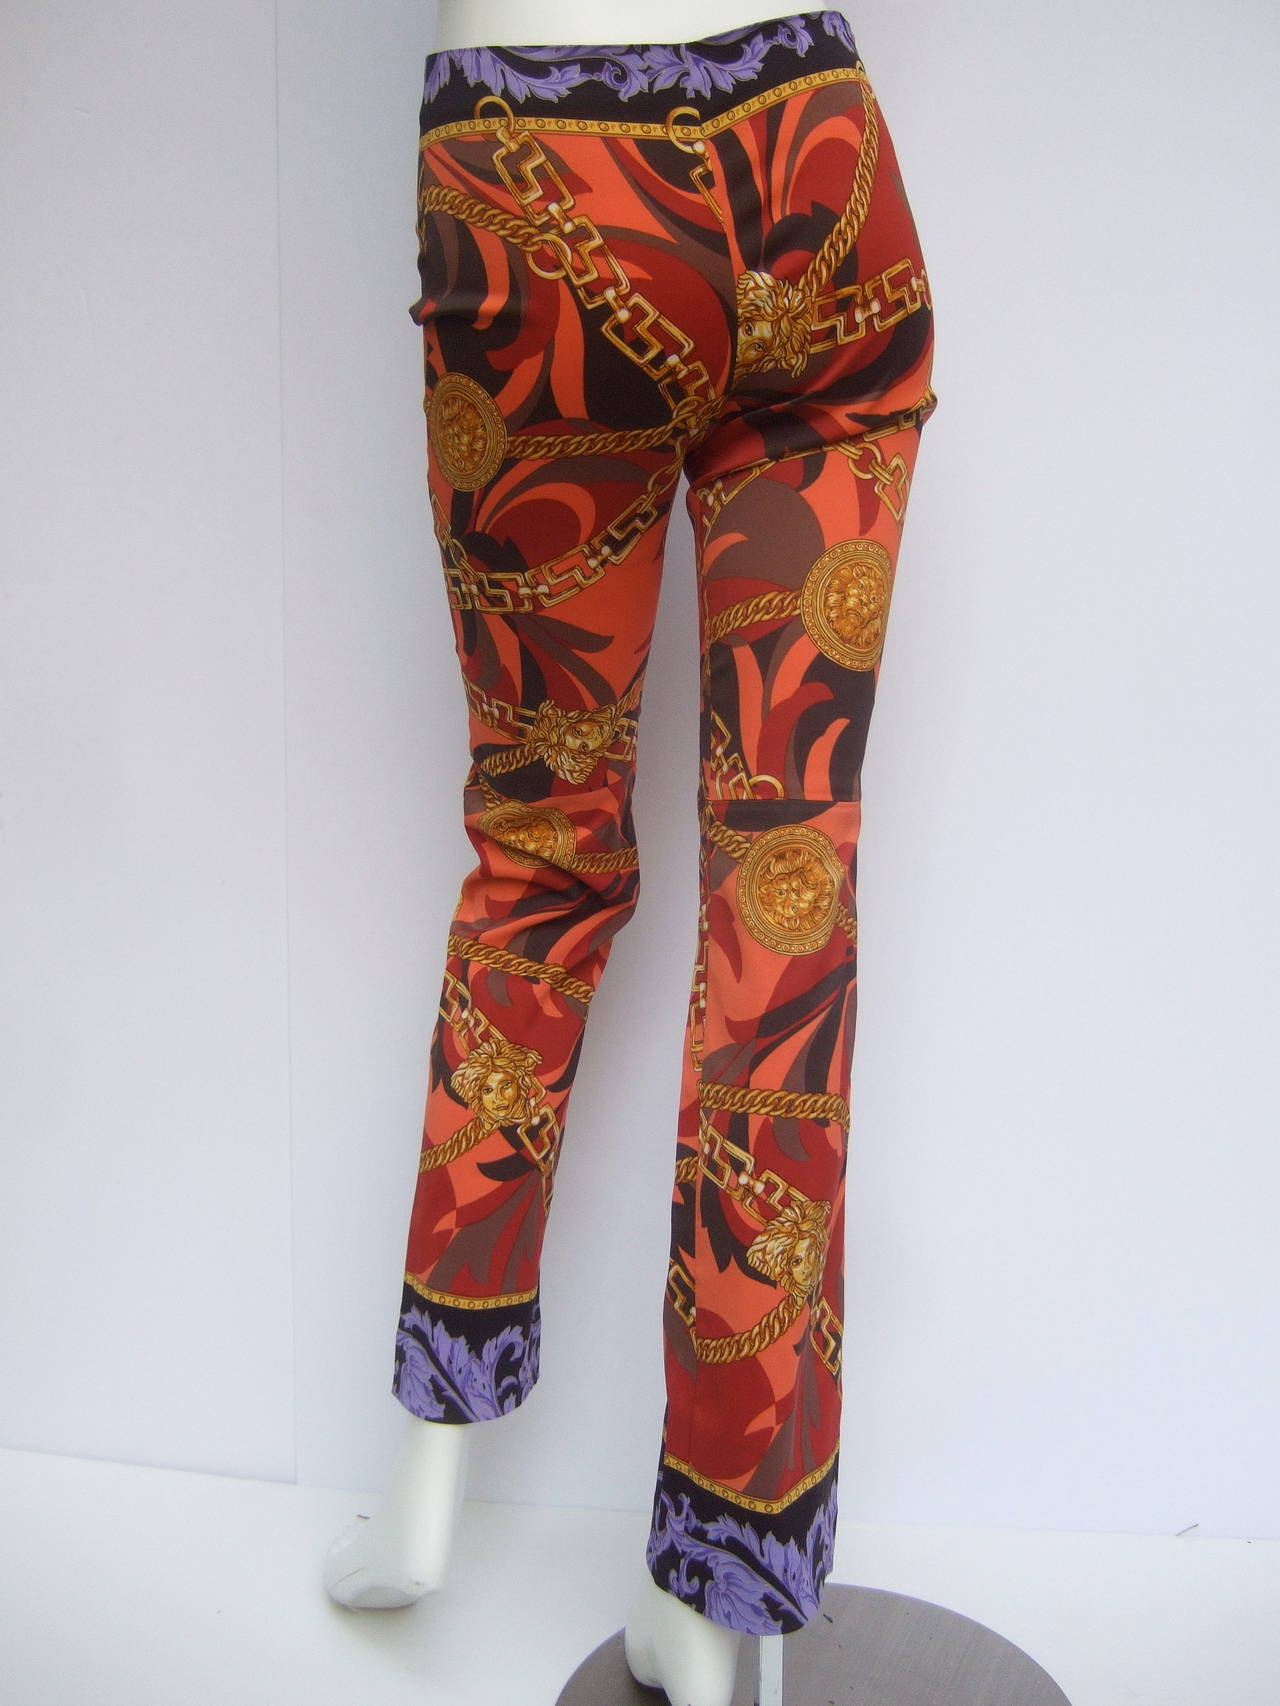 Versace Iconic Medusa Graphic Print Stretch Jeans Size 28 For Sale 1